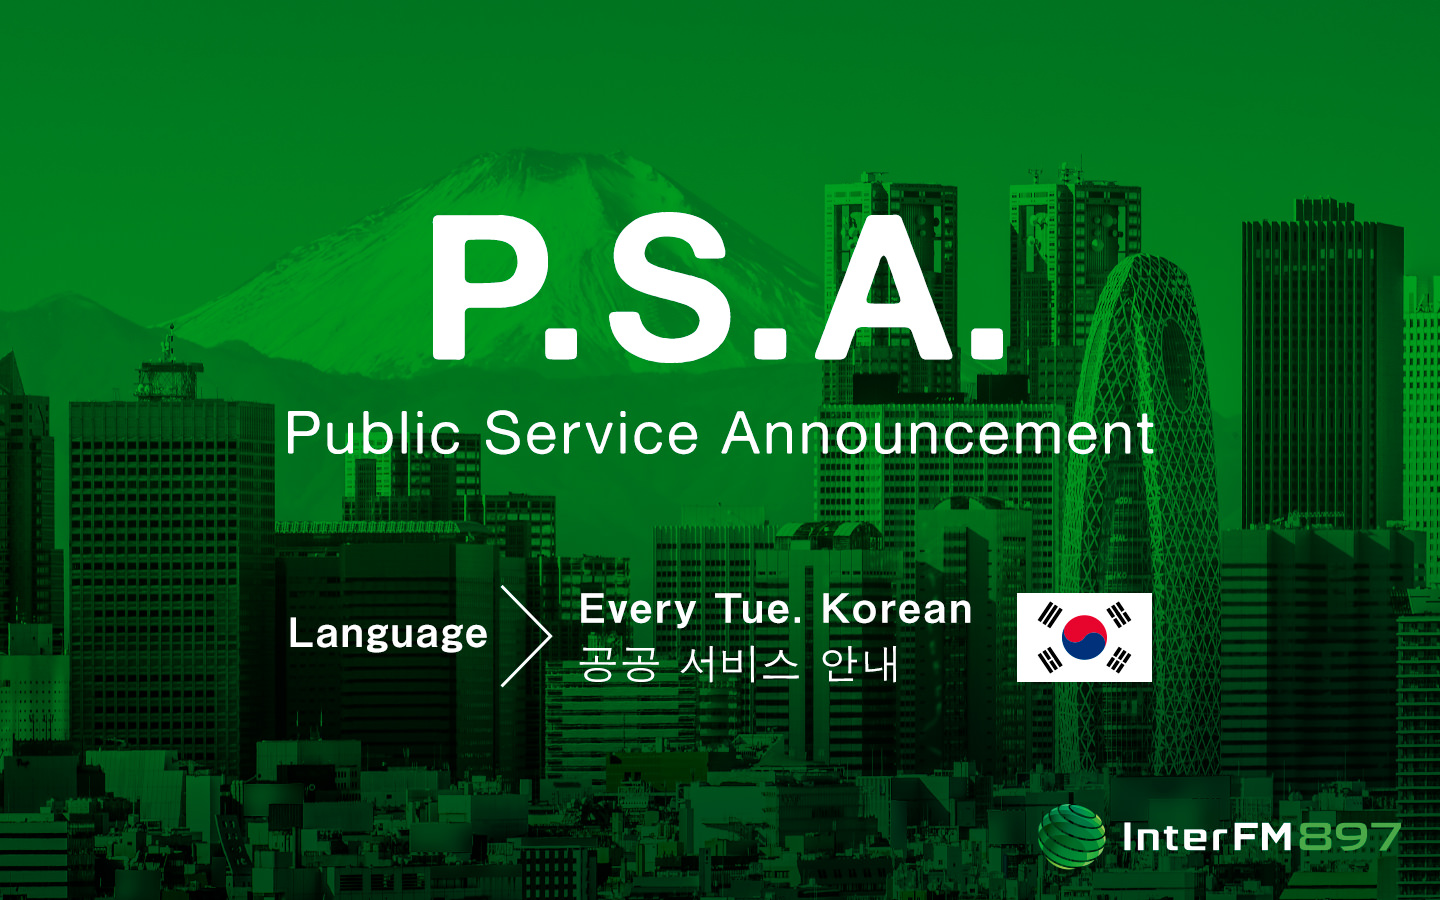 공익 광고 - Public Service Announcement (한국어 - Korean)